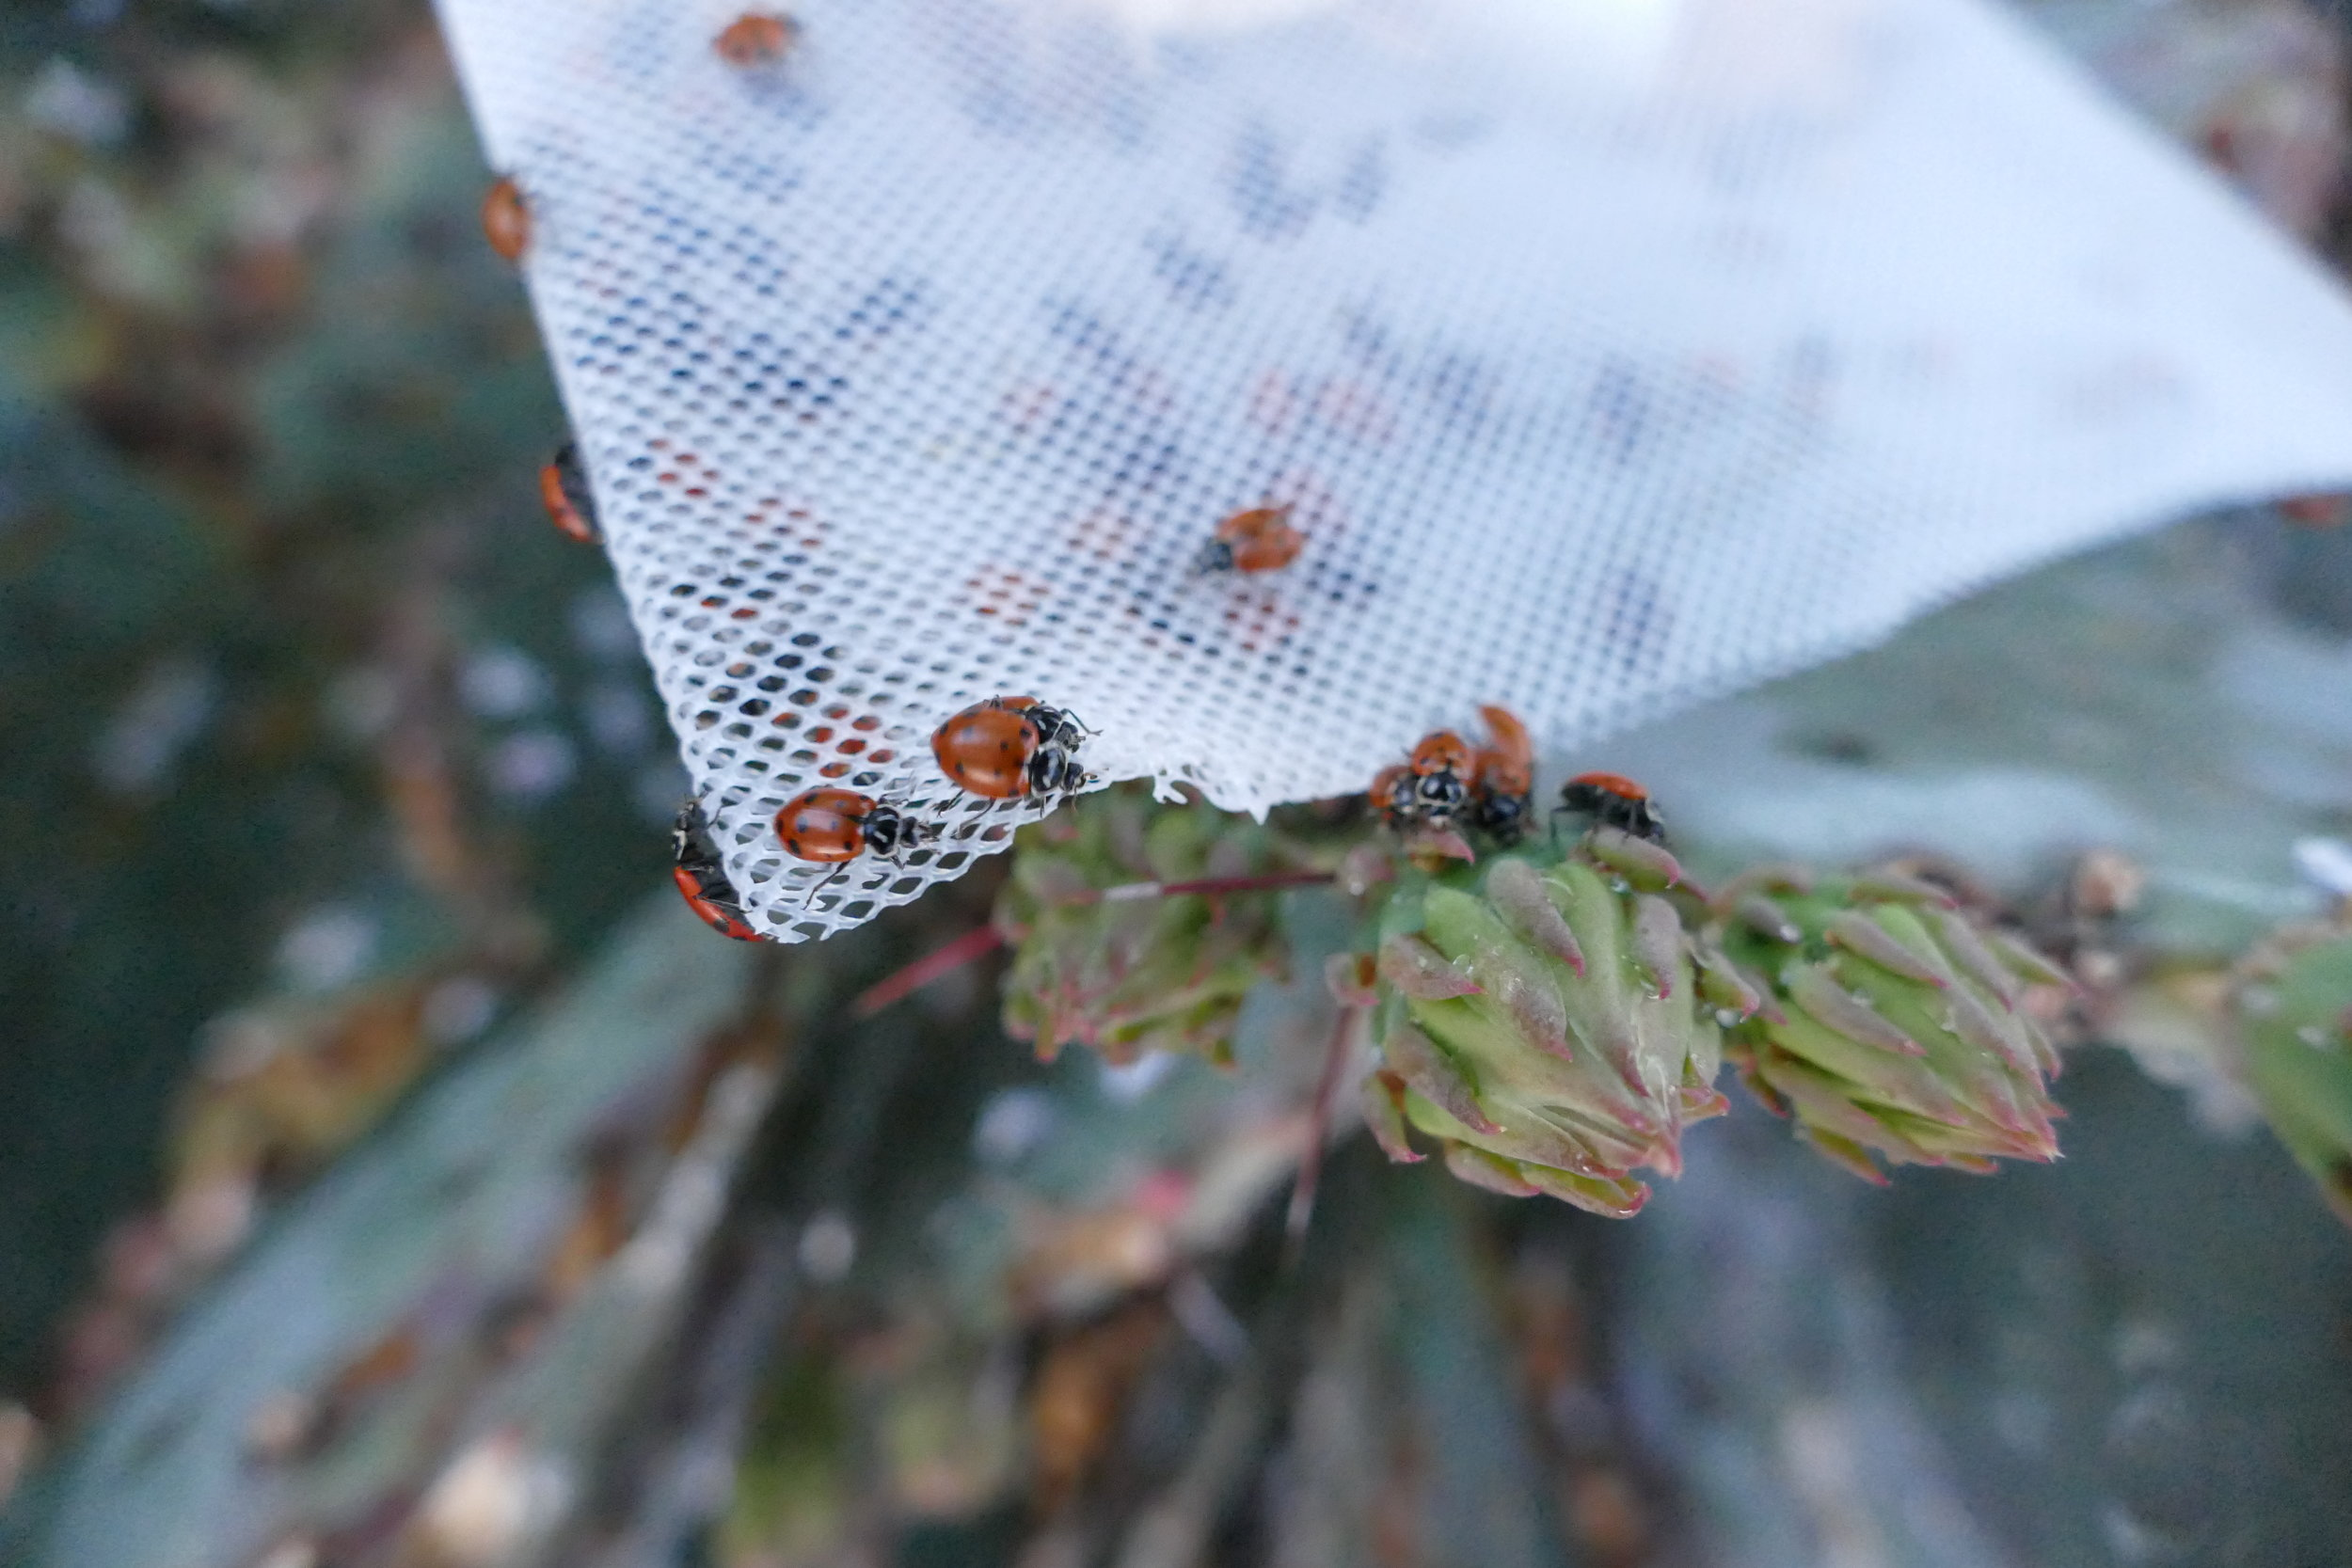 Hoping these ladies will enjoy eating up all those nasty mealy bugs on the prickly pear